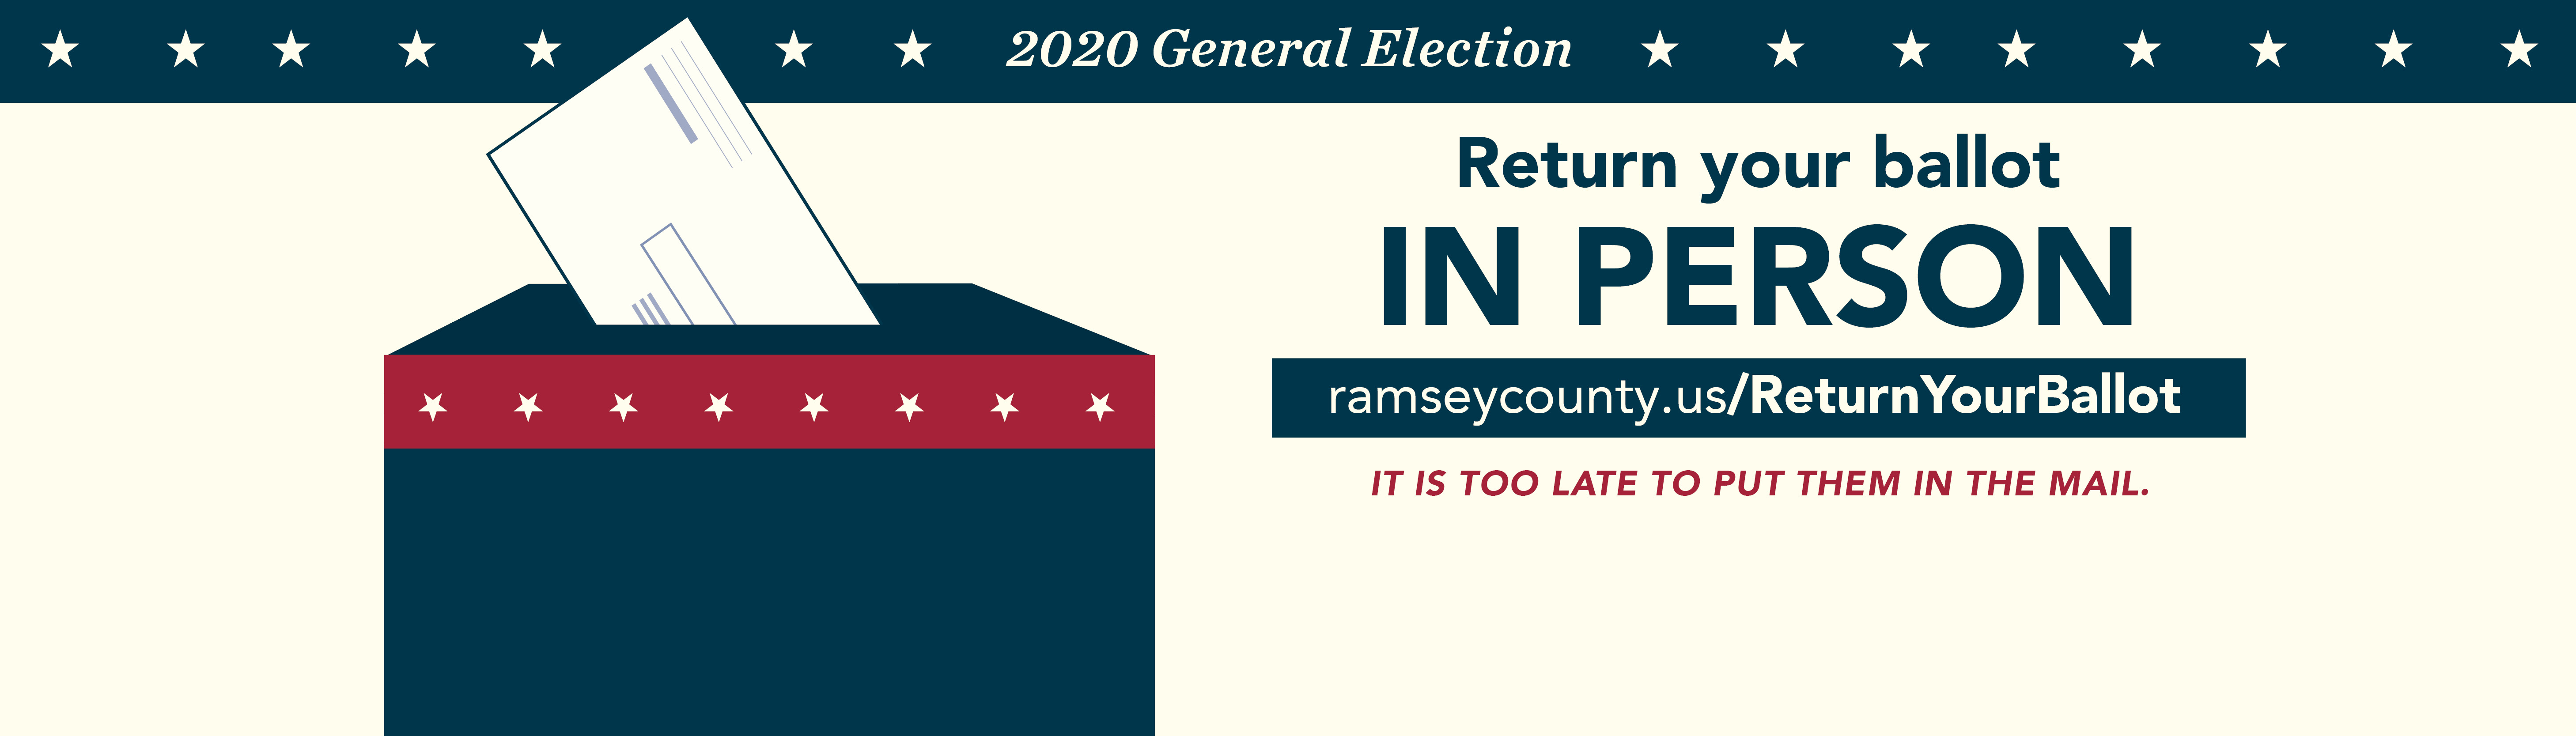 Return your ballot in person.